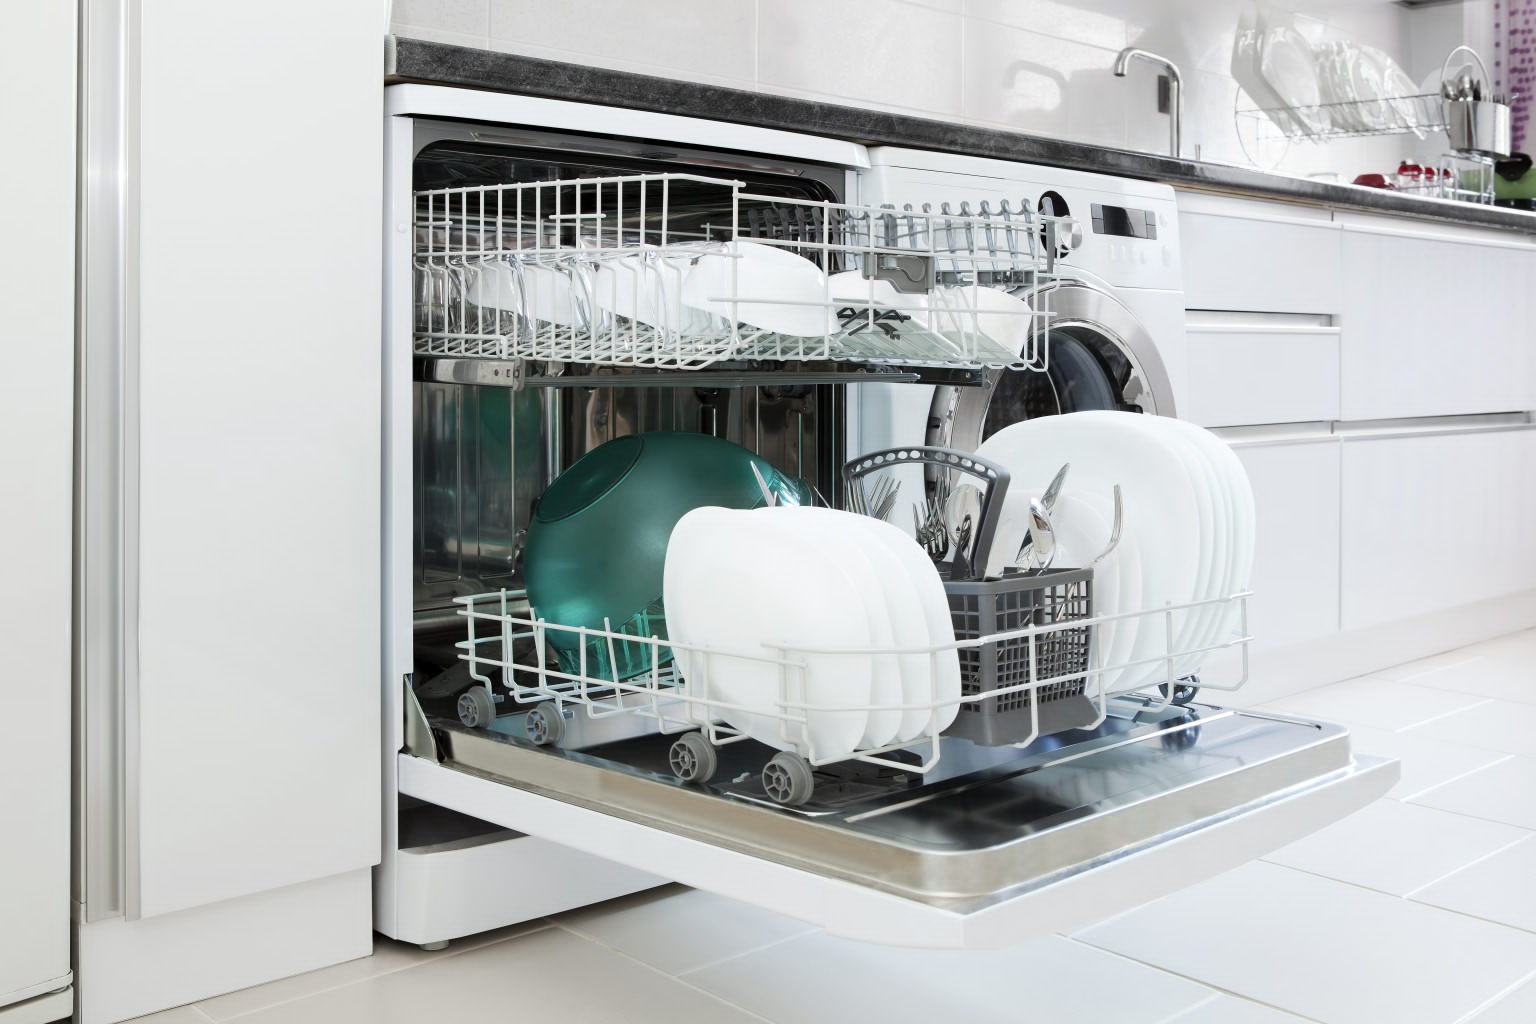 Home dishwashing service